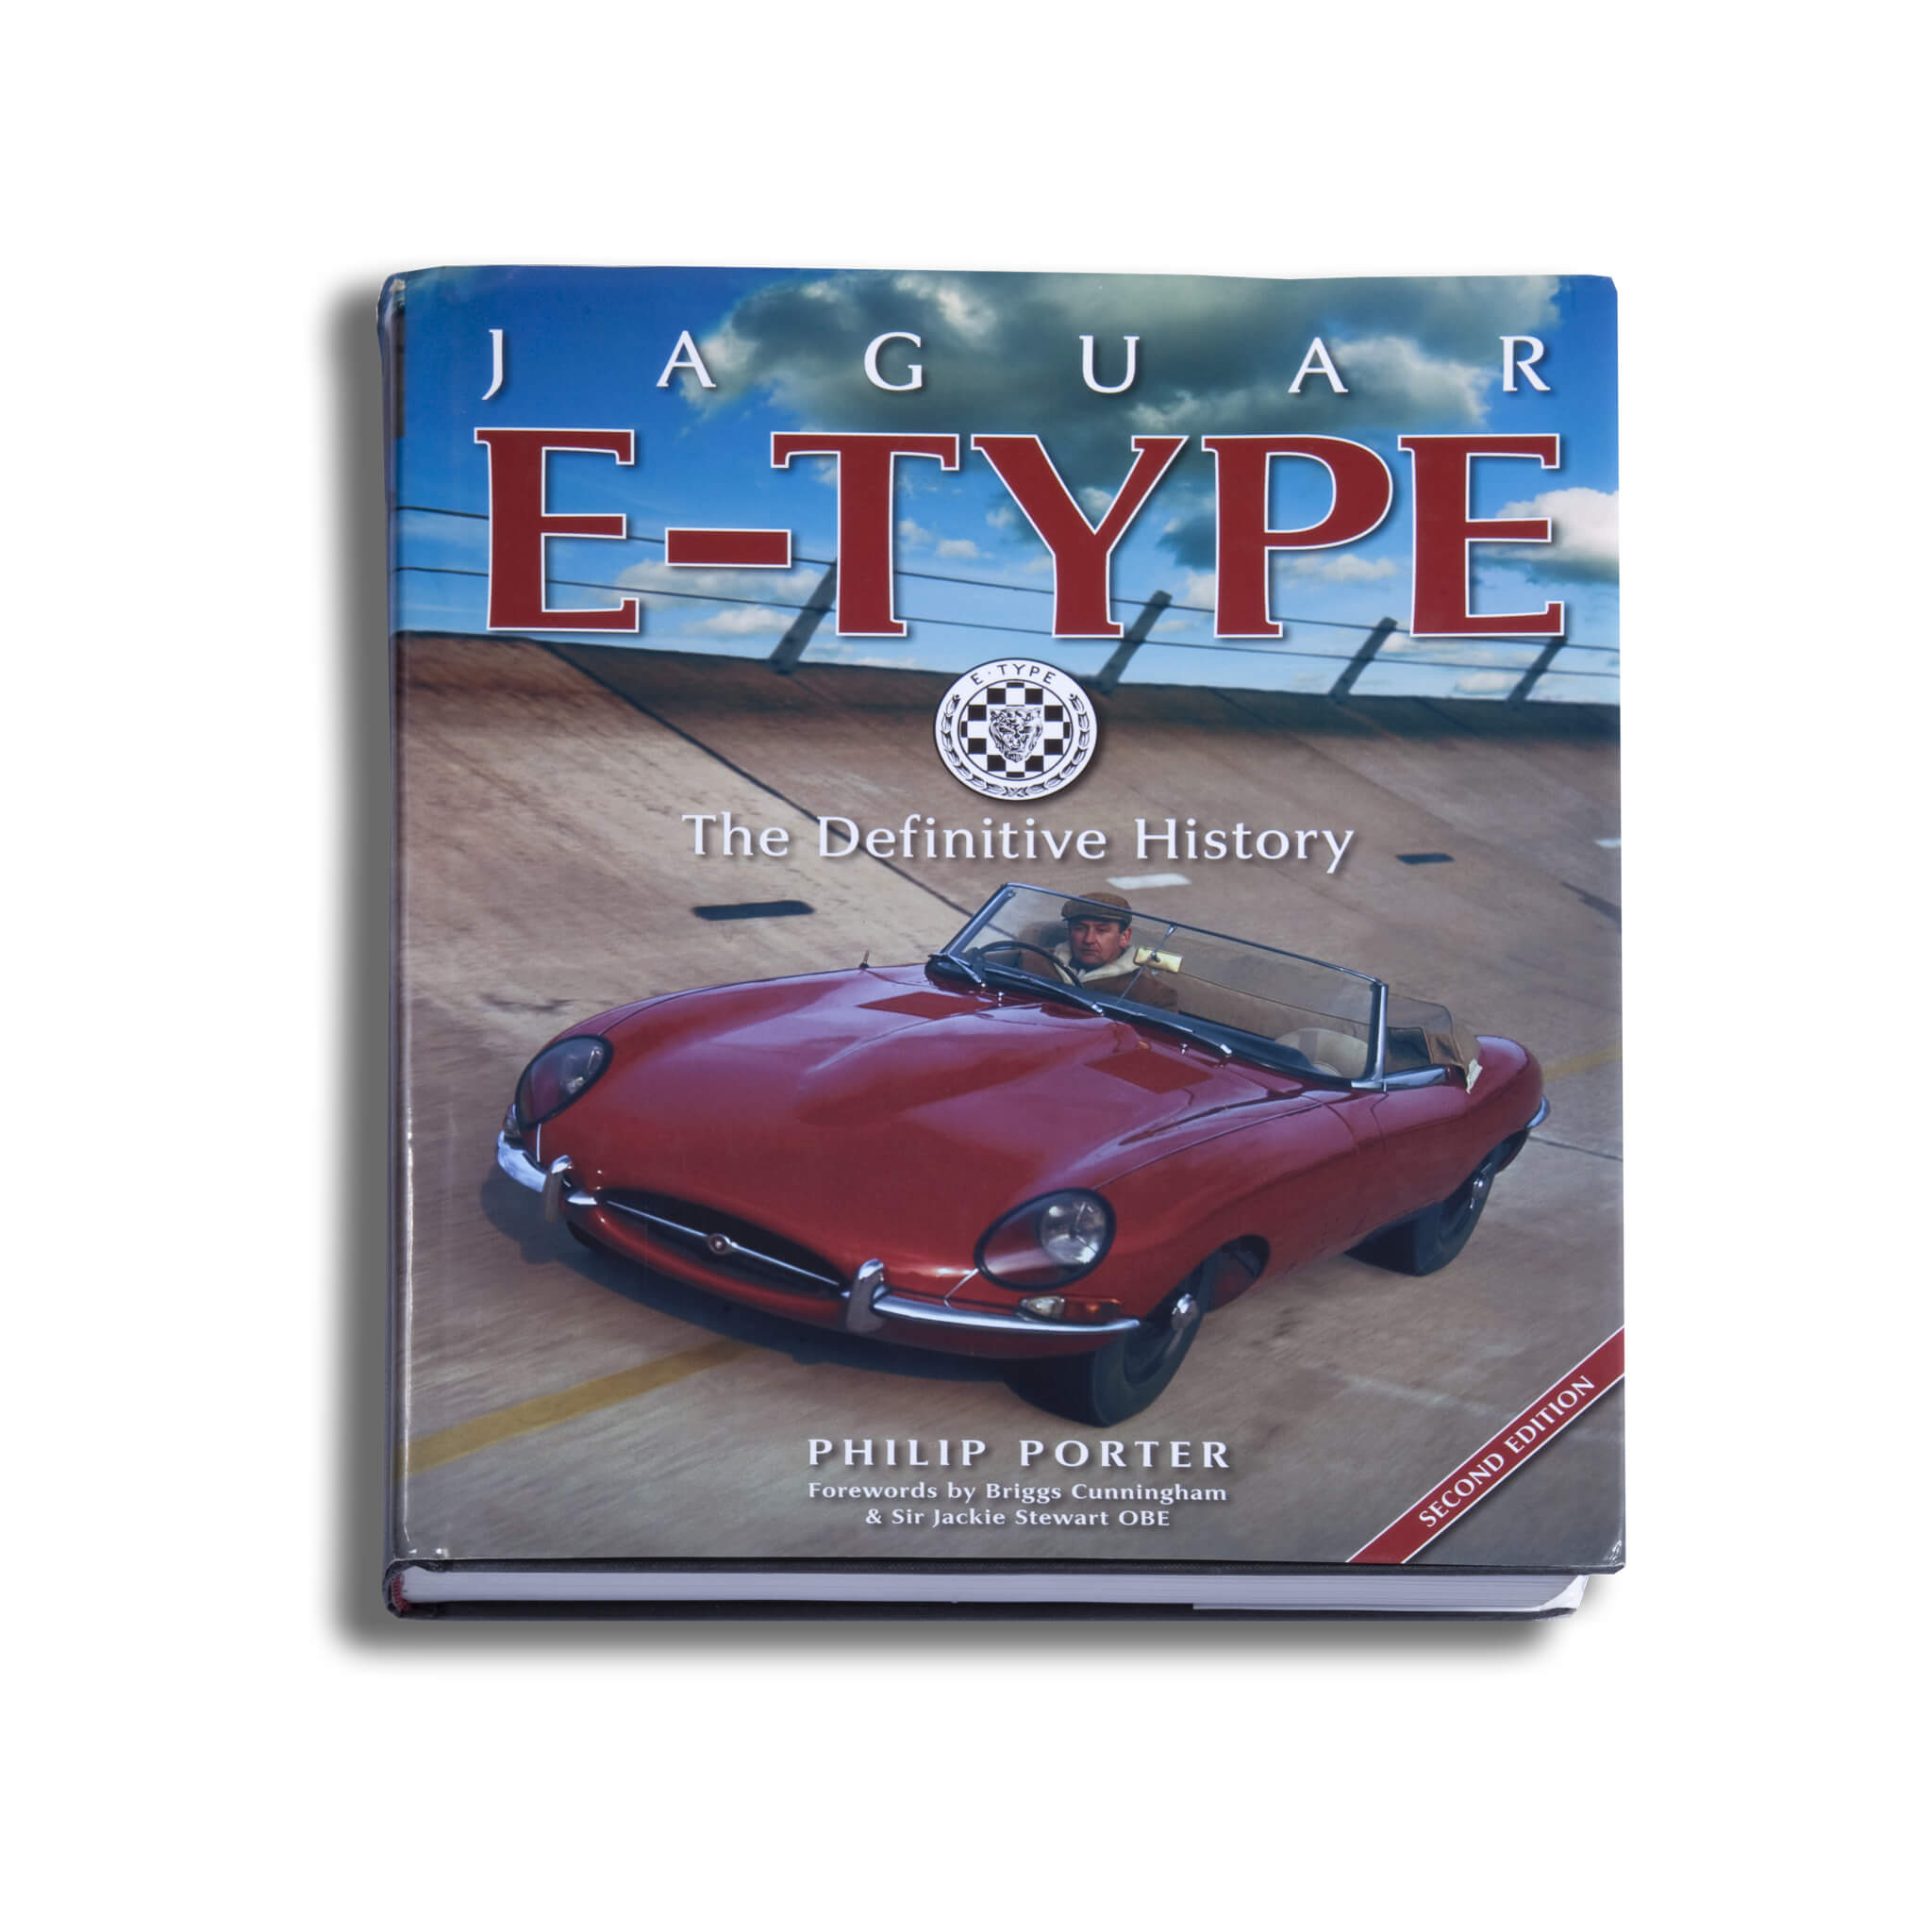 Jaguar E-Type: The Definitive History Book